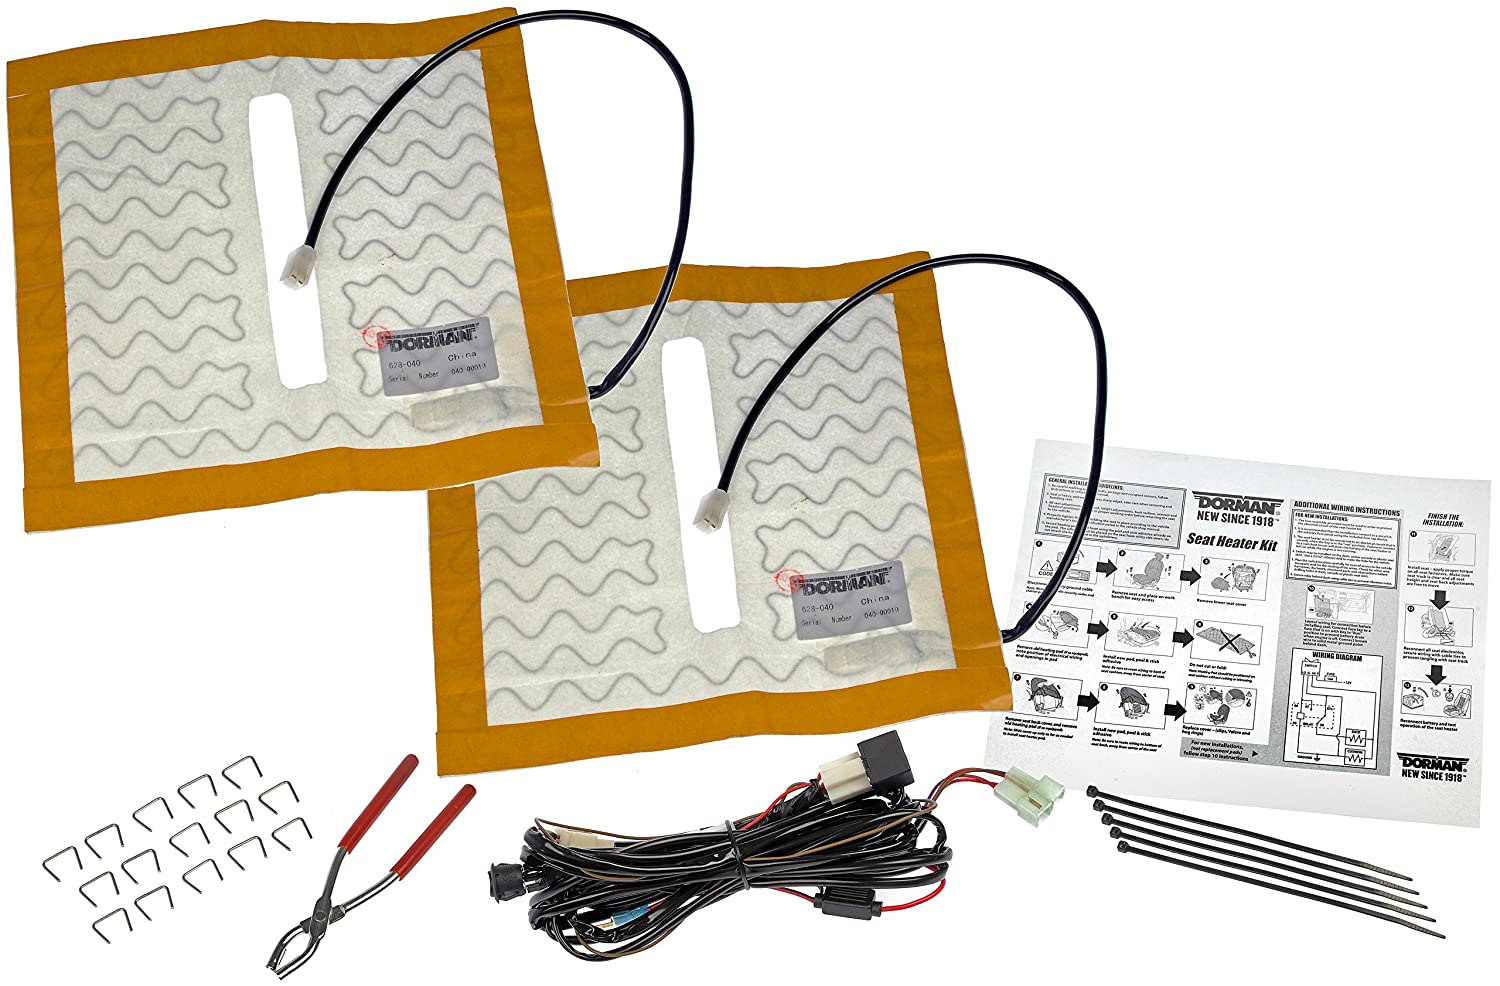 Dorman 628 040 Universal Seat Heater Kit Automotive Relay Wiring Diagram